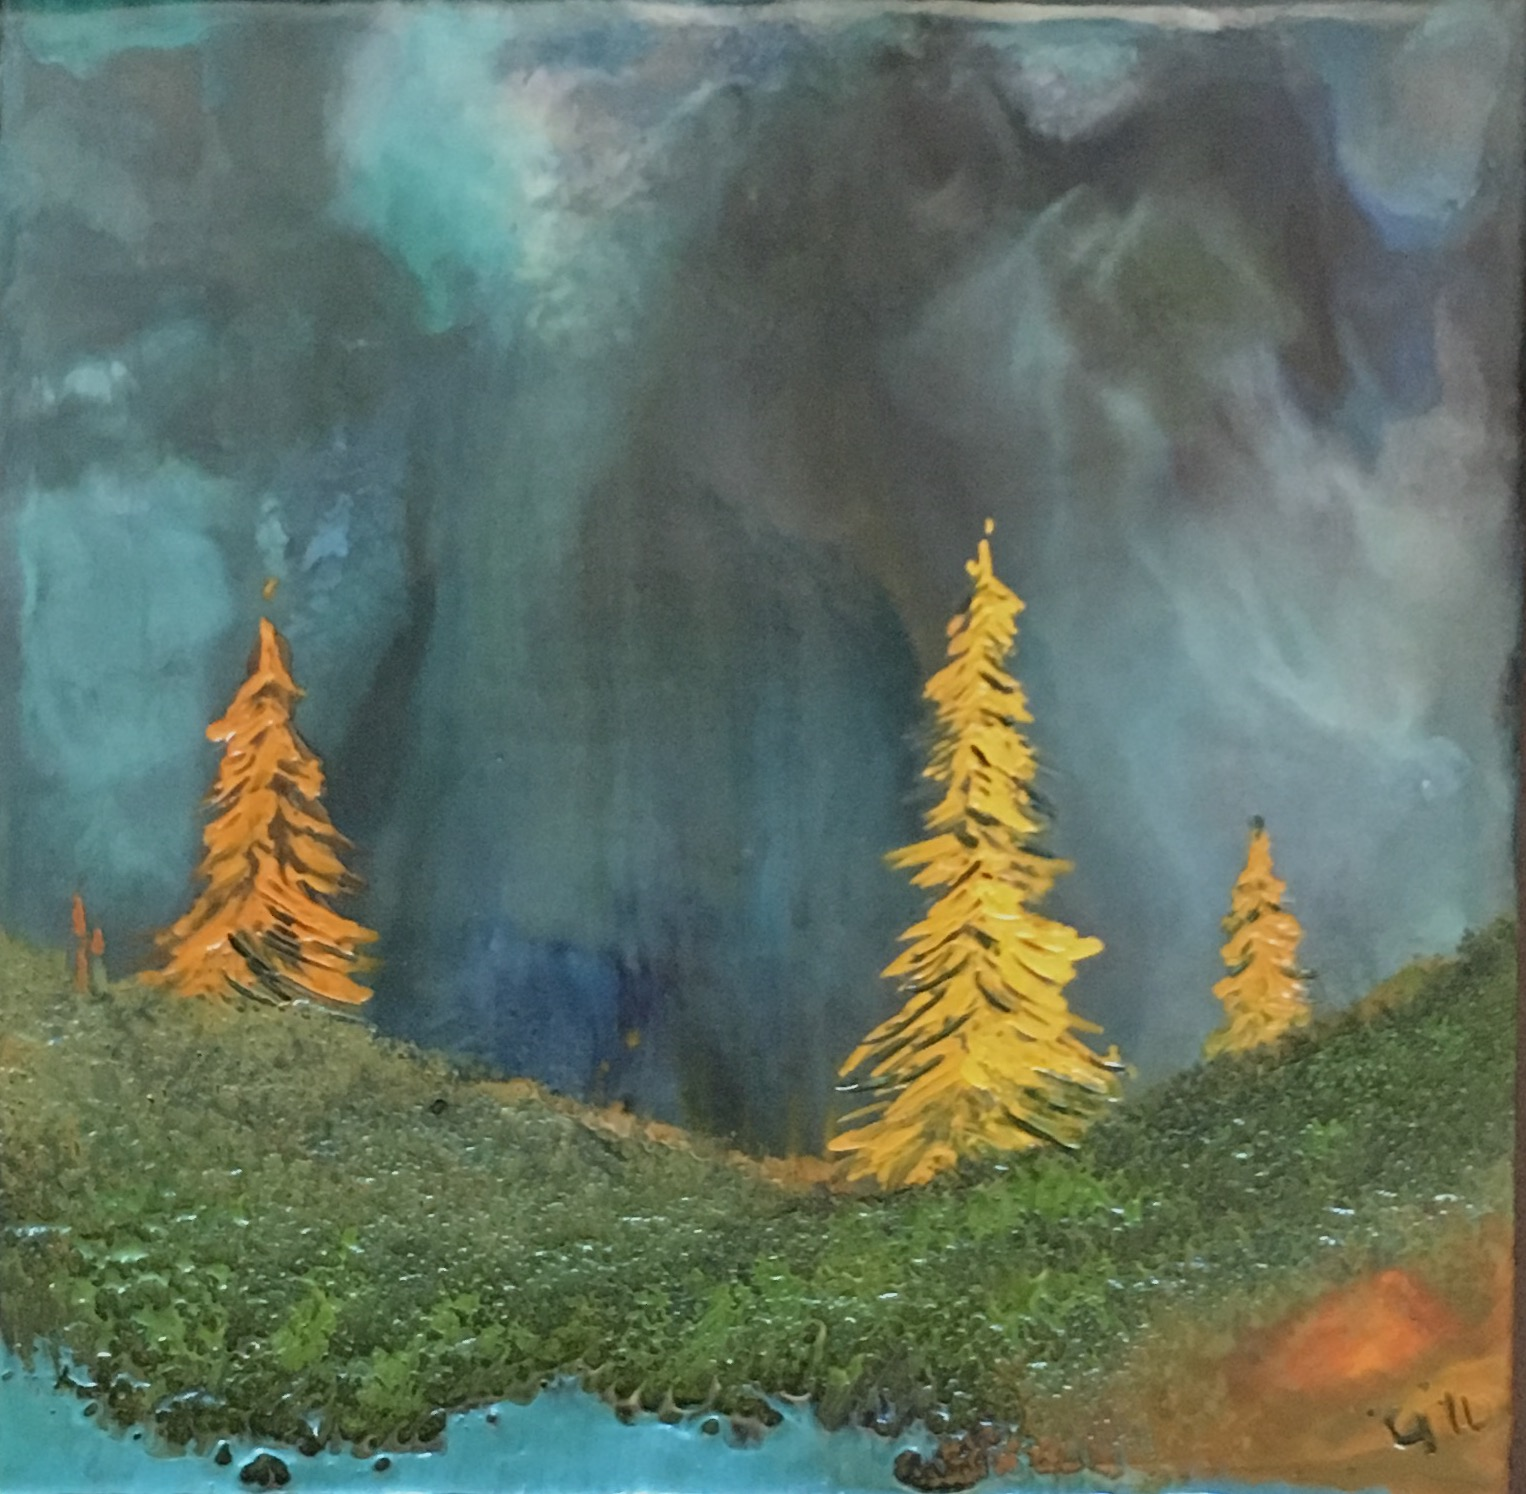 """""""Mountain Larch""""   6x6"""" framed  encaustic mixed media on cradle board  SOLD  2016"""